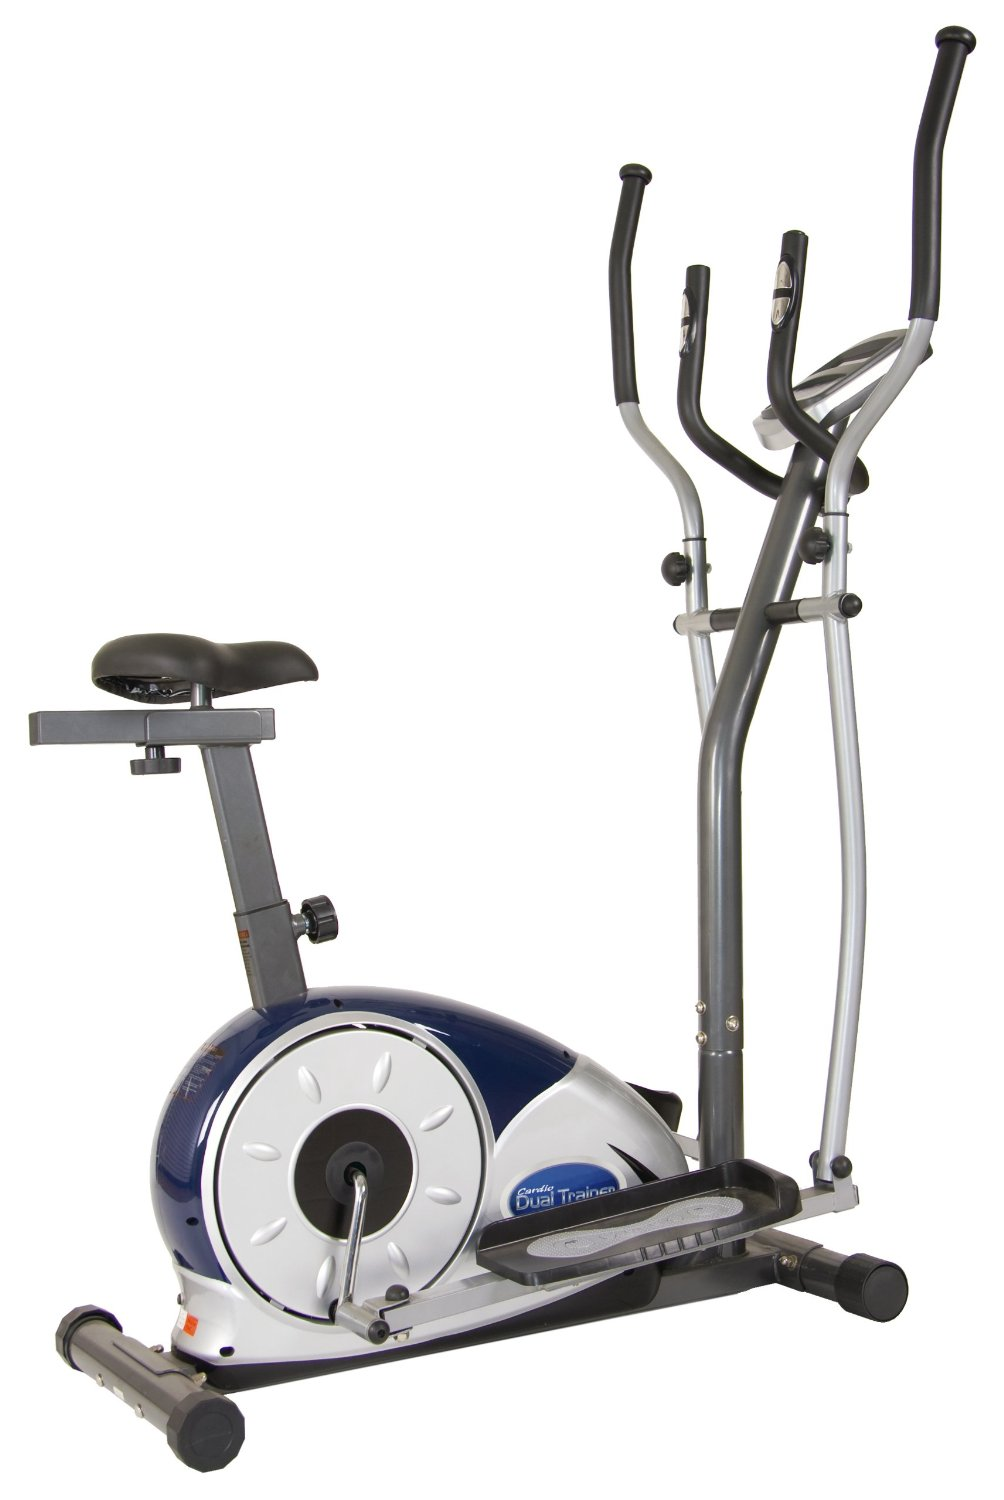 Body Champ BRM3671 Cardio Dual Trainer Reviews